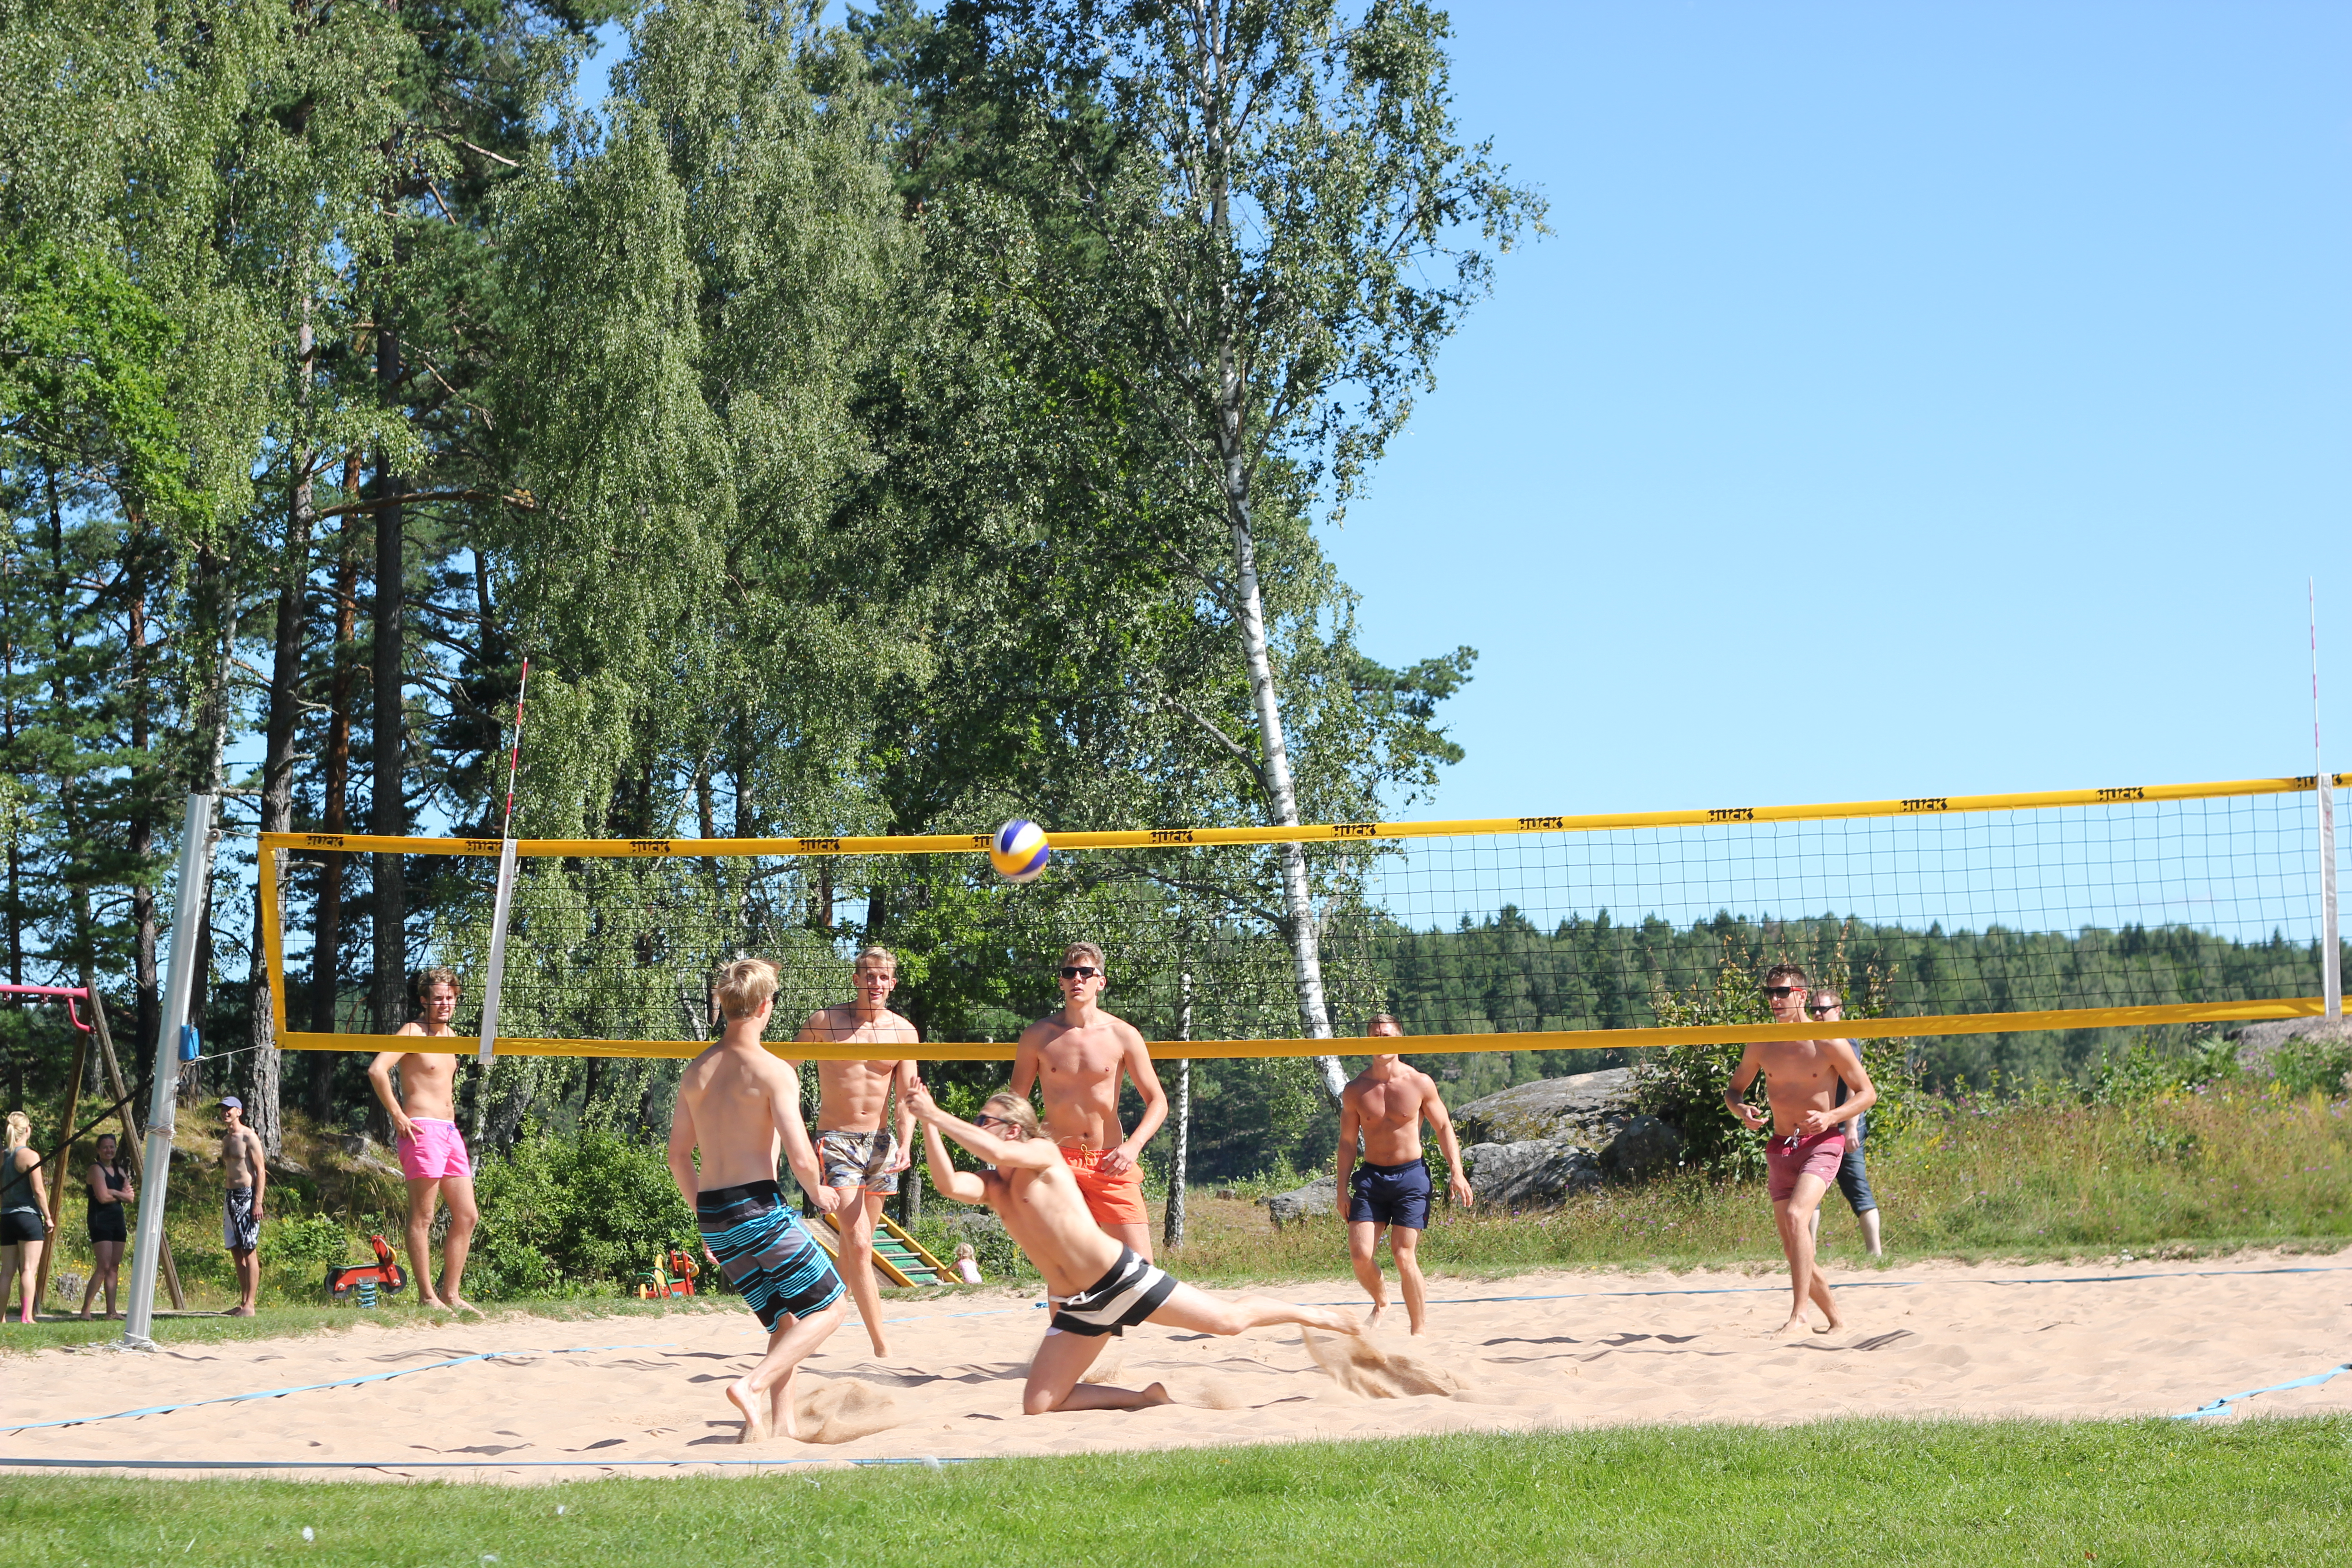 Bönergården Café Bad Sommaröppet Volleyboll Sand Beachvolley